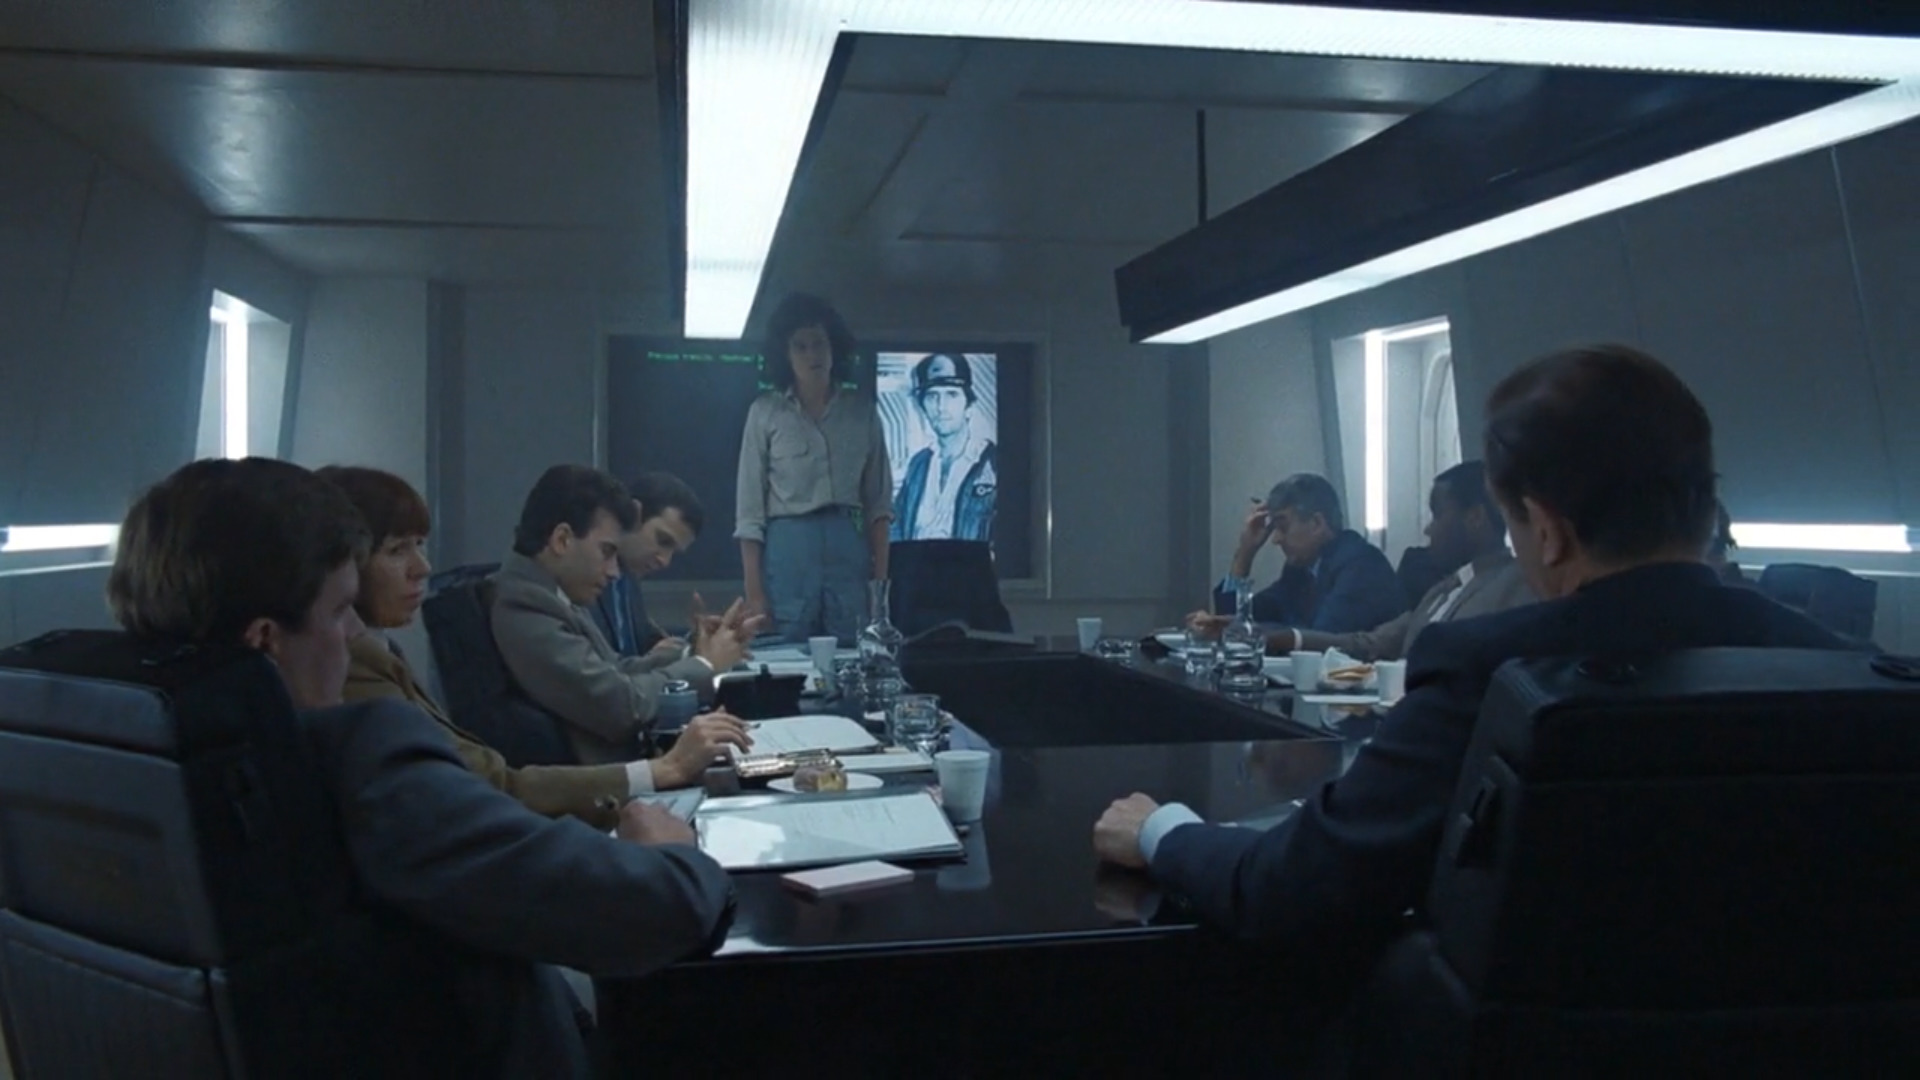 Ripley (Sigourney Weaver) faces a debriefing after being rescued from hypersleep, but is ultimately dissatisfied that her employers do not believe her story about the presence of the Xenomorph.